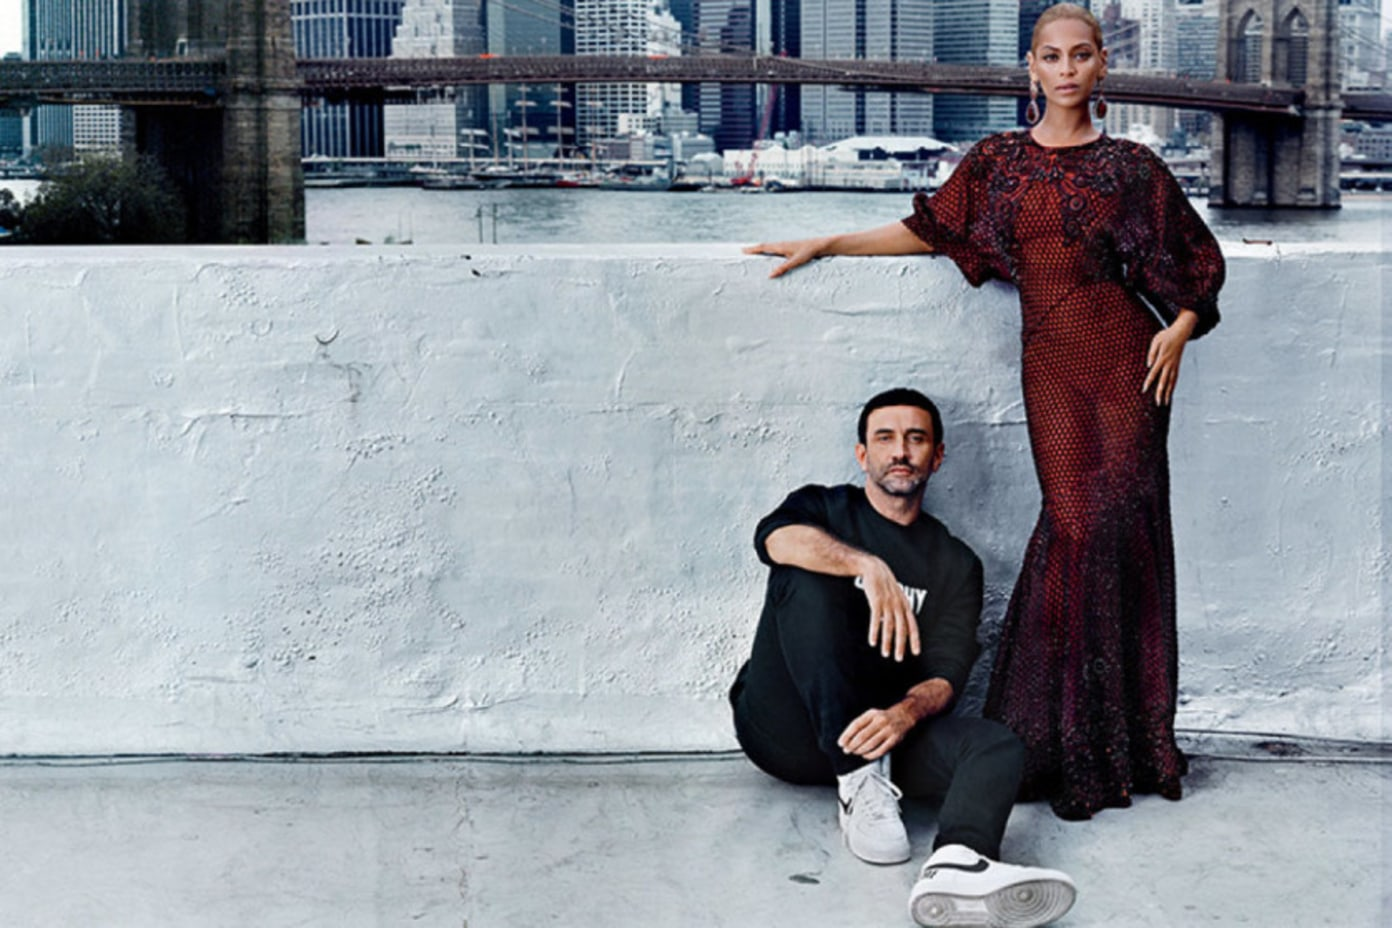 #FactsFriday – Who is Riccardo Tisci?